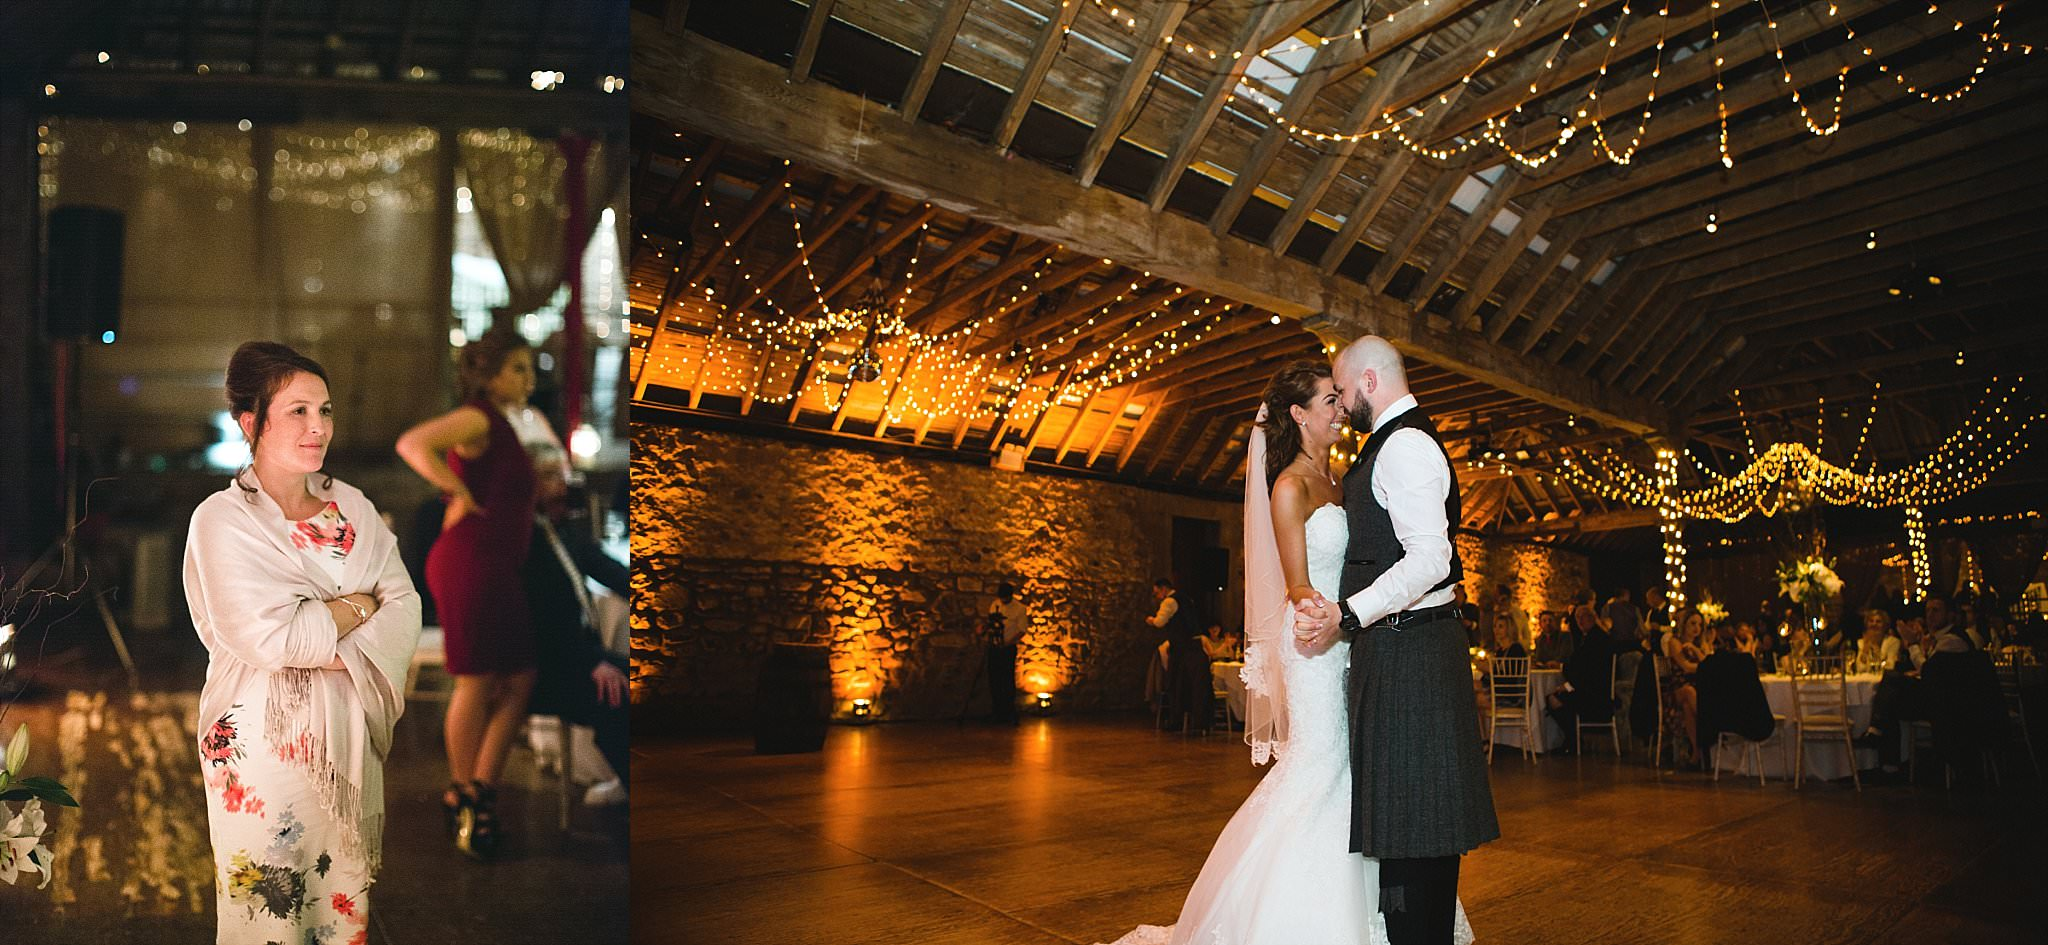 Fine Art Wedding Photographers,The Gibsons,elegant wedding photographers glasgow,husband and wife photographers scotland,natural wedding photographers,romantic photographers Scotland,wedding Kinkell Byre,